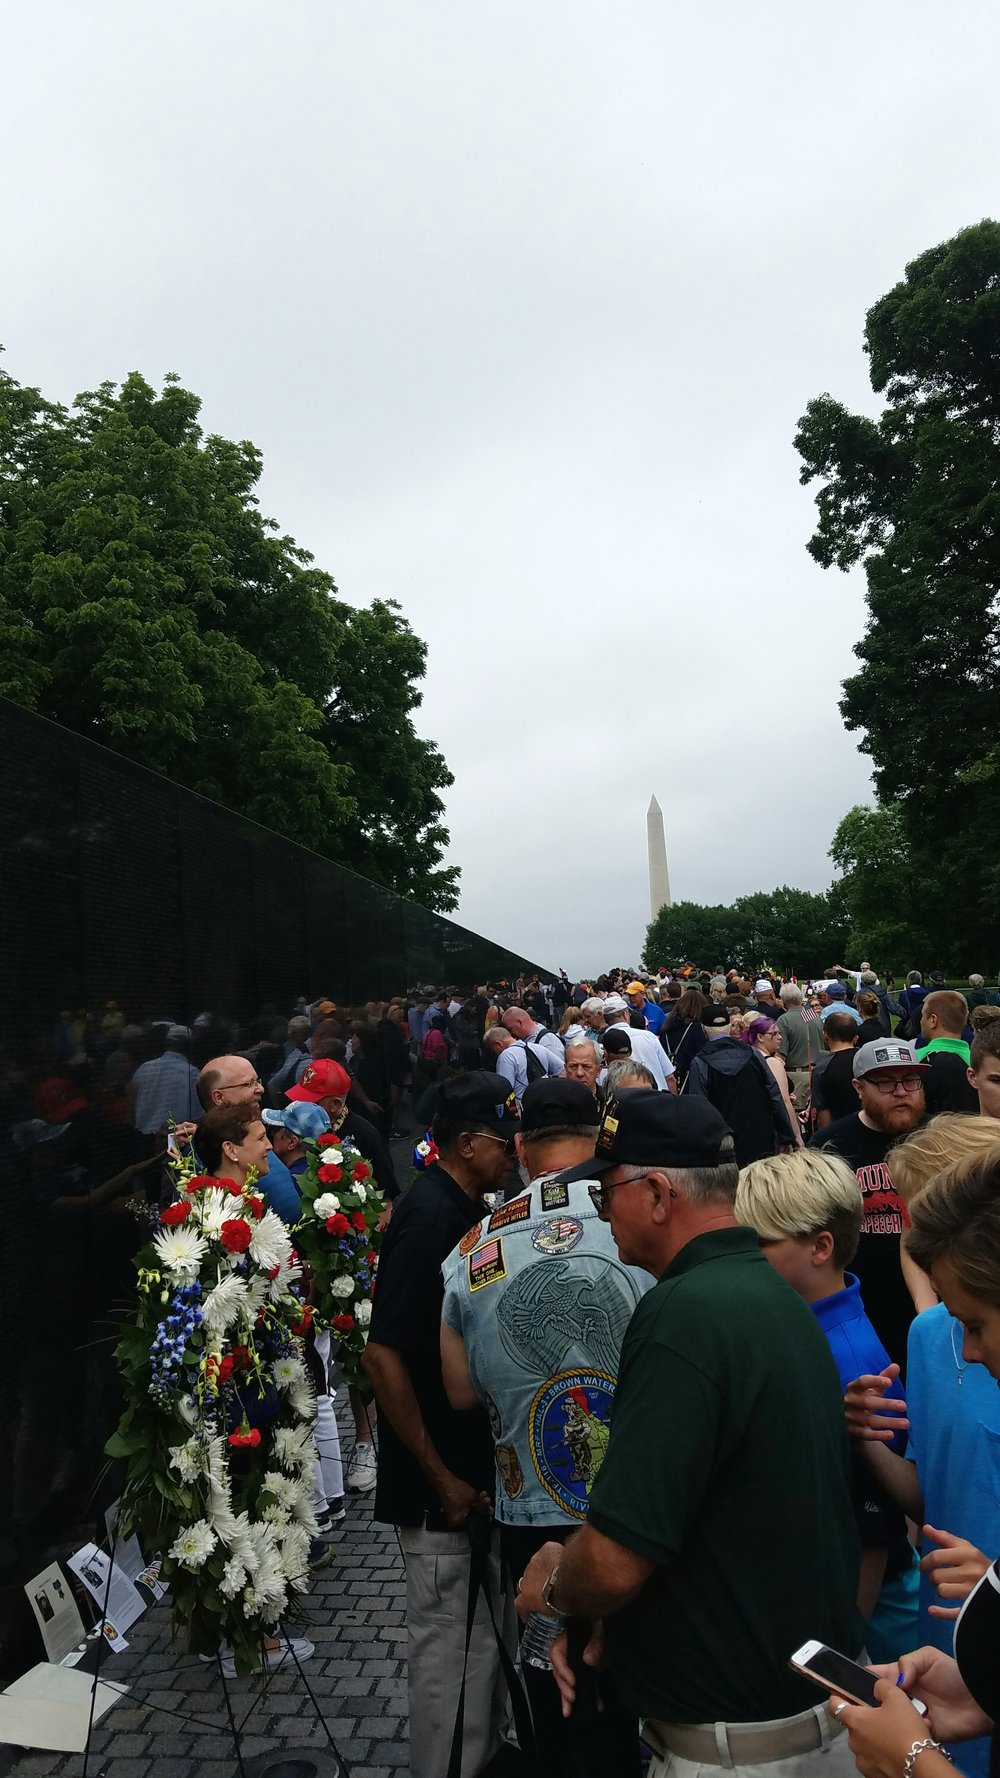 Vietnam Wall on Memorial Day